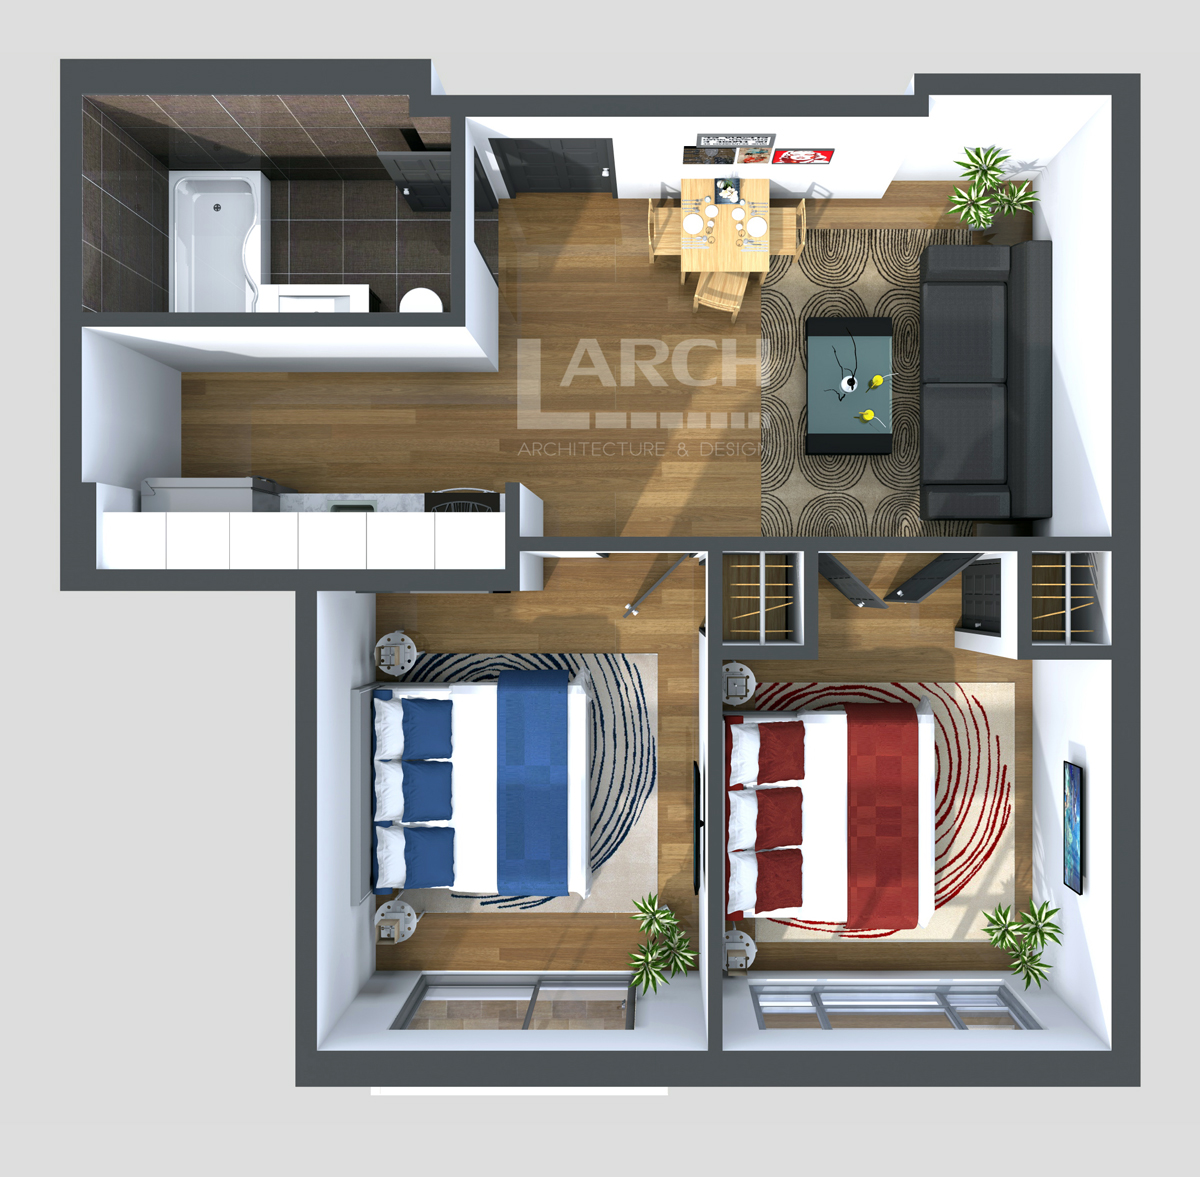 Photorealistic 3D Floor Plans